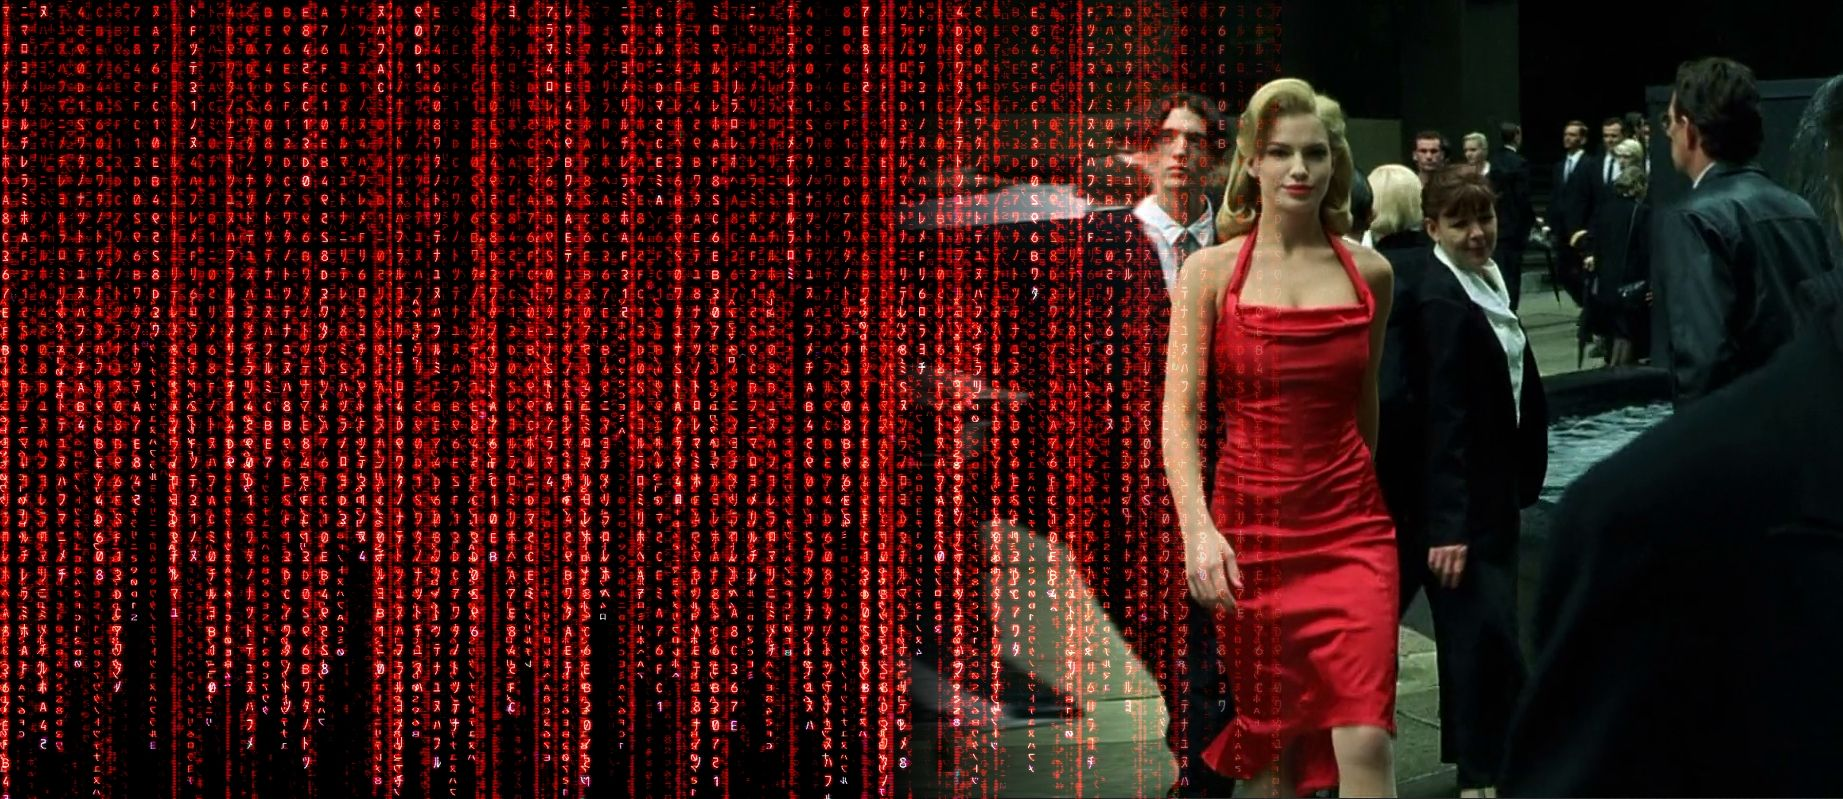 [Image: matrix-code-reality-lady-in-red.jpg]